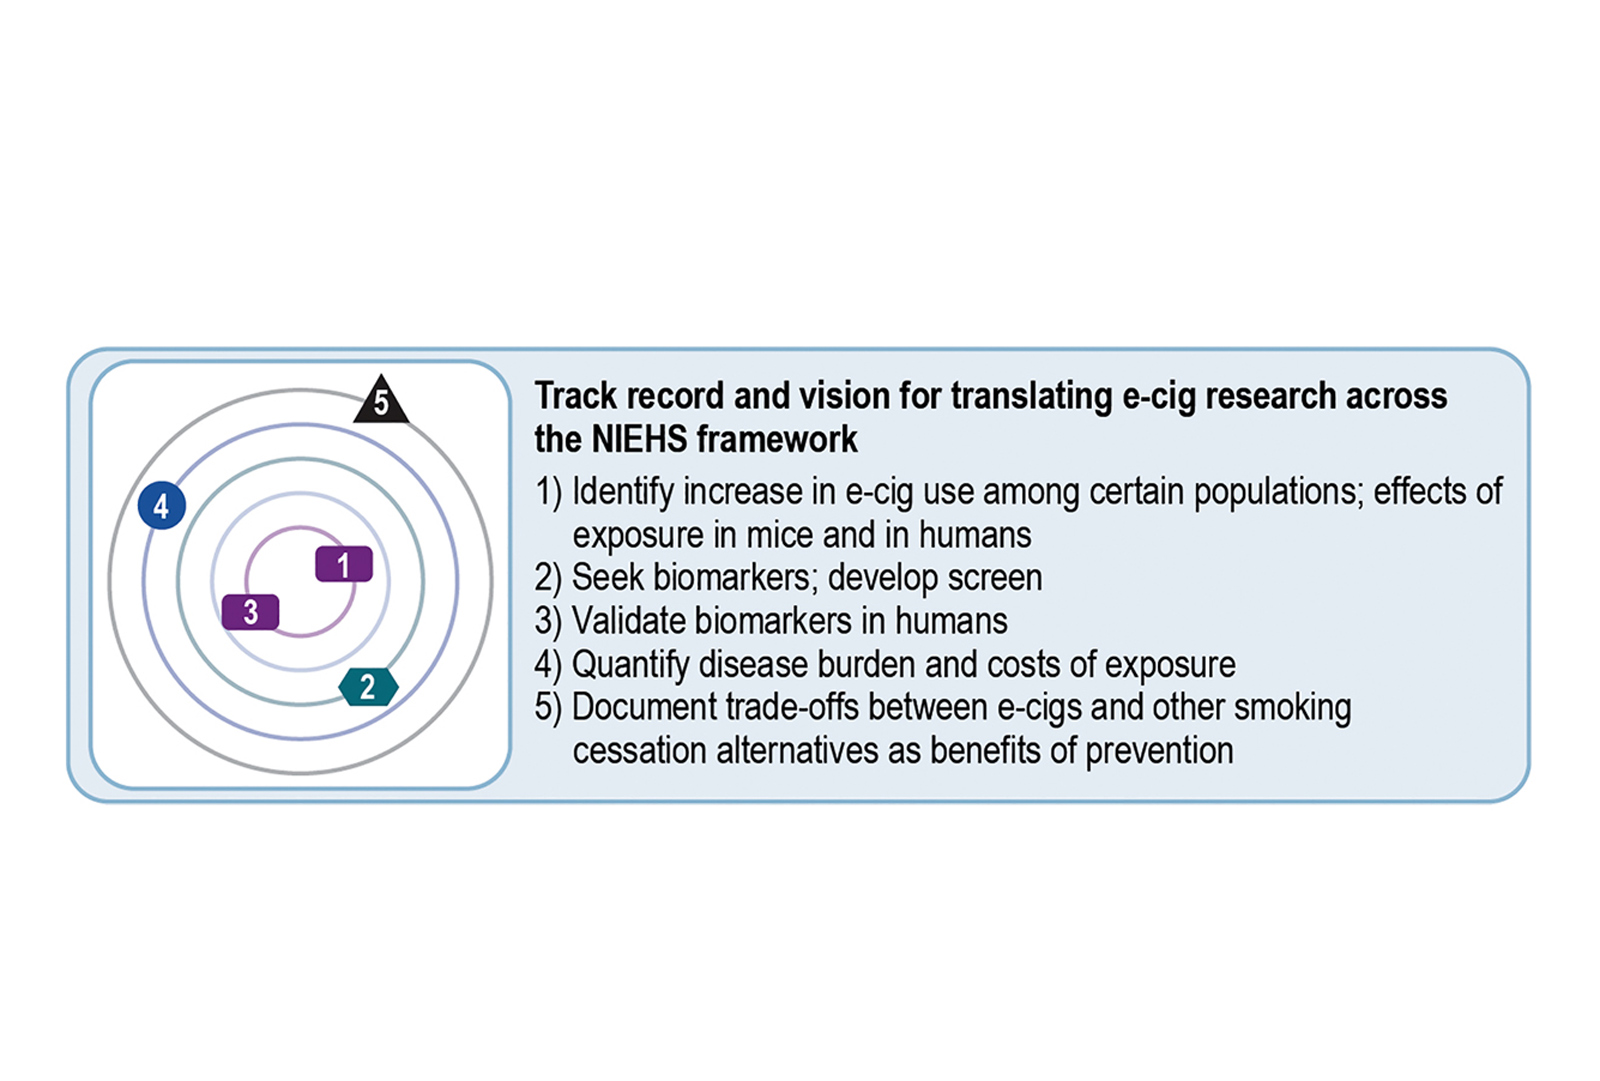 The center translates electronic cigarettes research across the NIEHS translational research framework, from identifying the effects of e-cig exposure in mice and in humans through documenting trade-offs between e-cigs and other smoking cessation alternatives as benefits of prevention